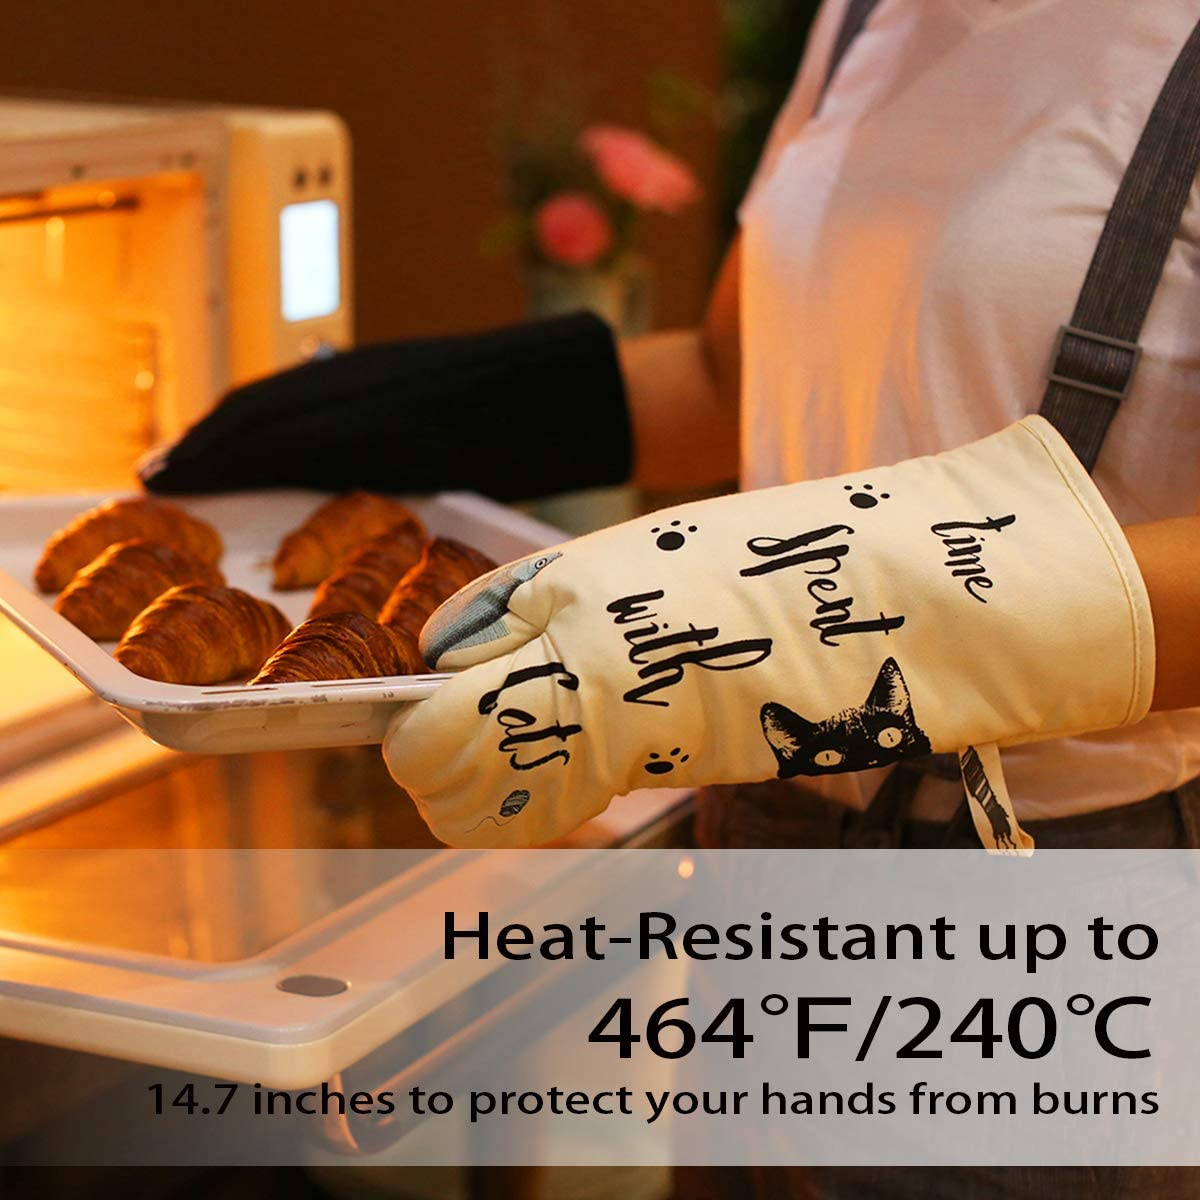 Warome 6Pcs Heat Resistant up to 464 /°F Thick Cotton Kitchen Oven Mitts,Pot Holders /& Kitchen Towels,Perfect for Kitchen,Baking BBQ Cooking